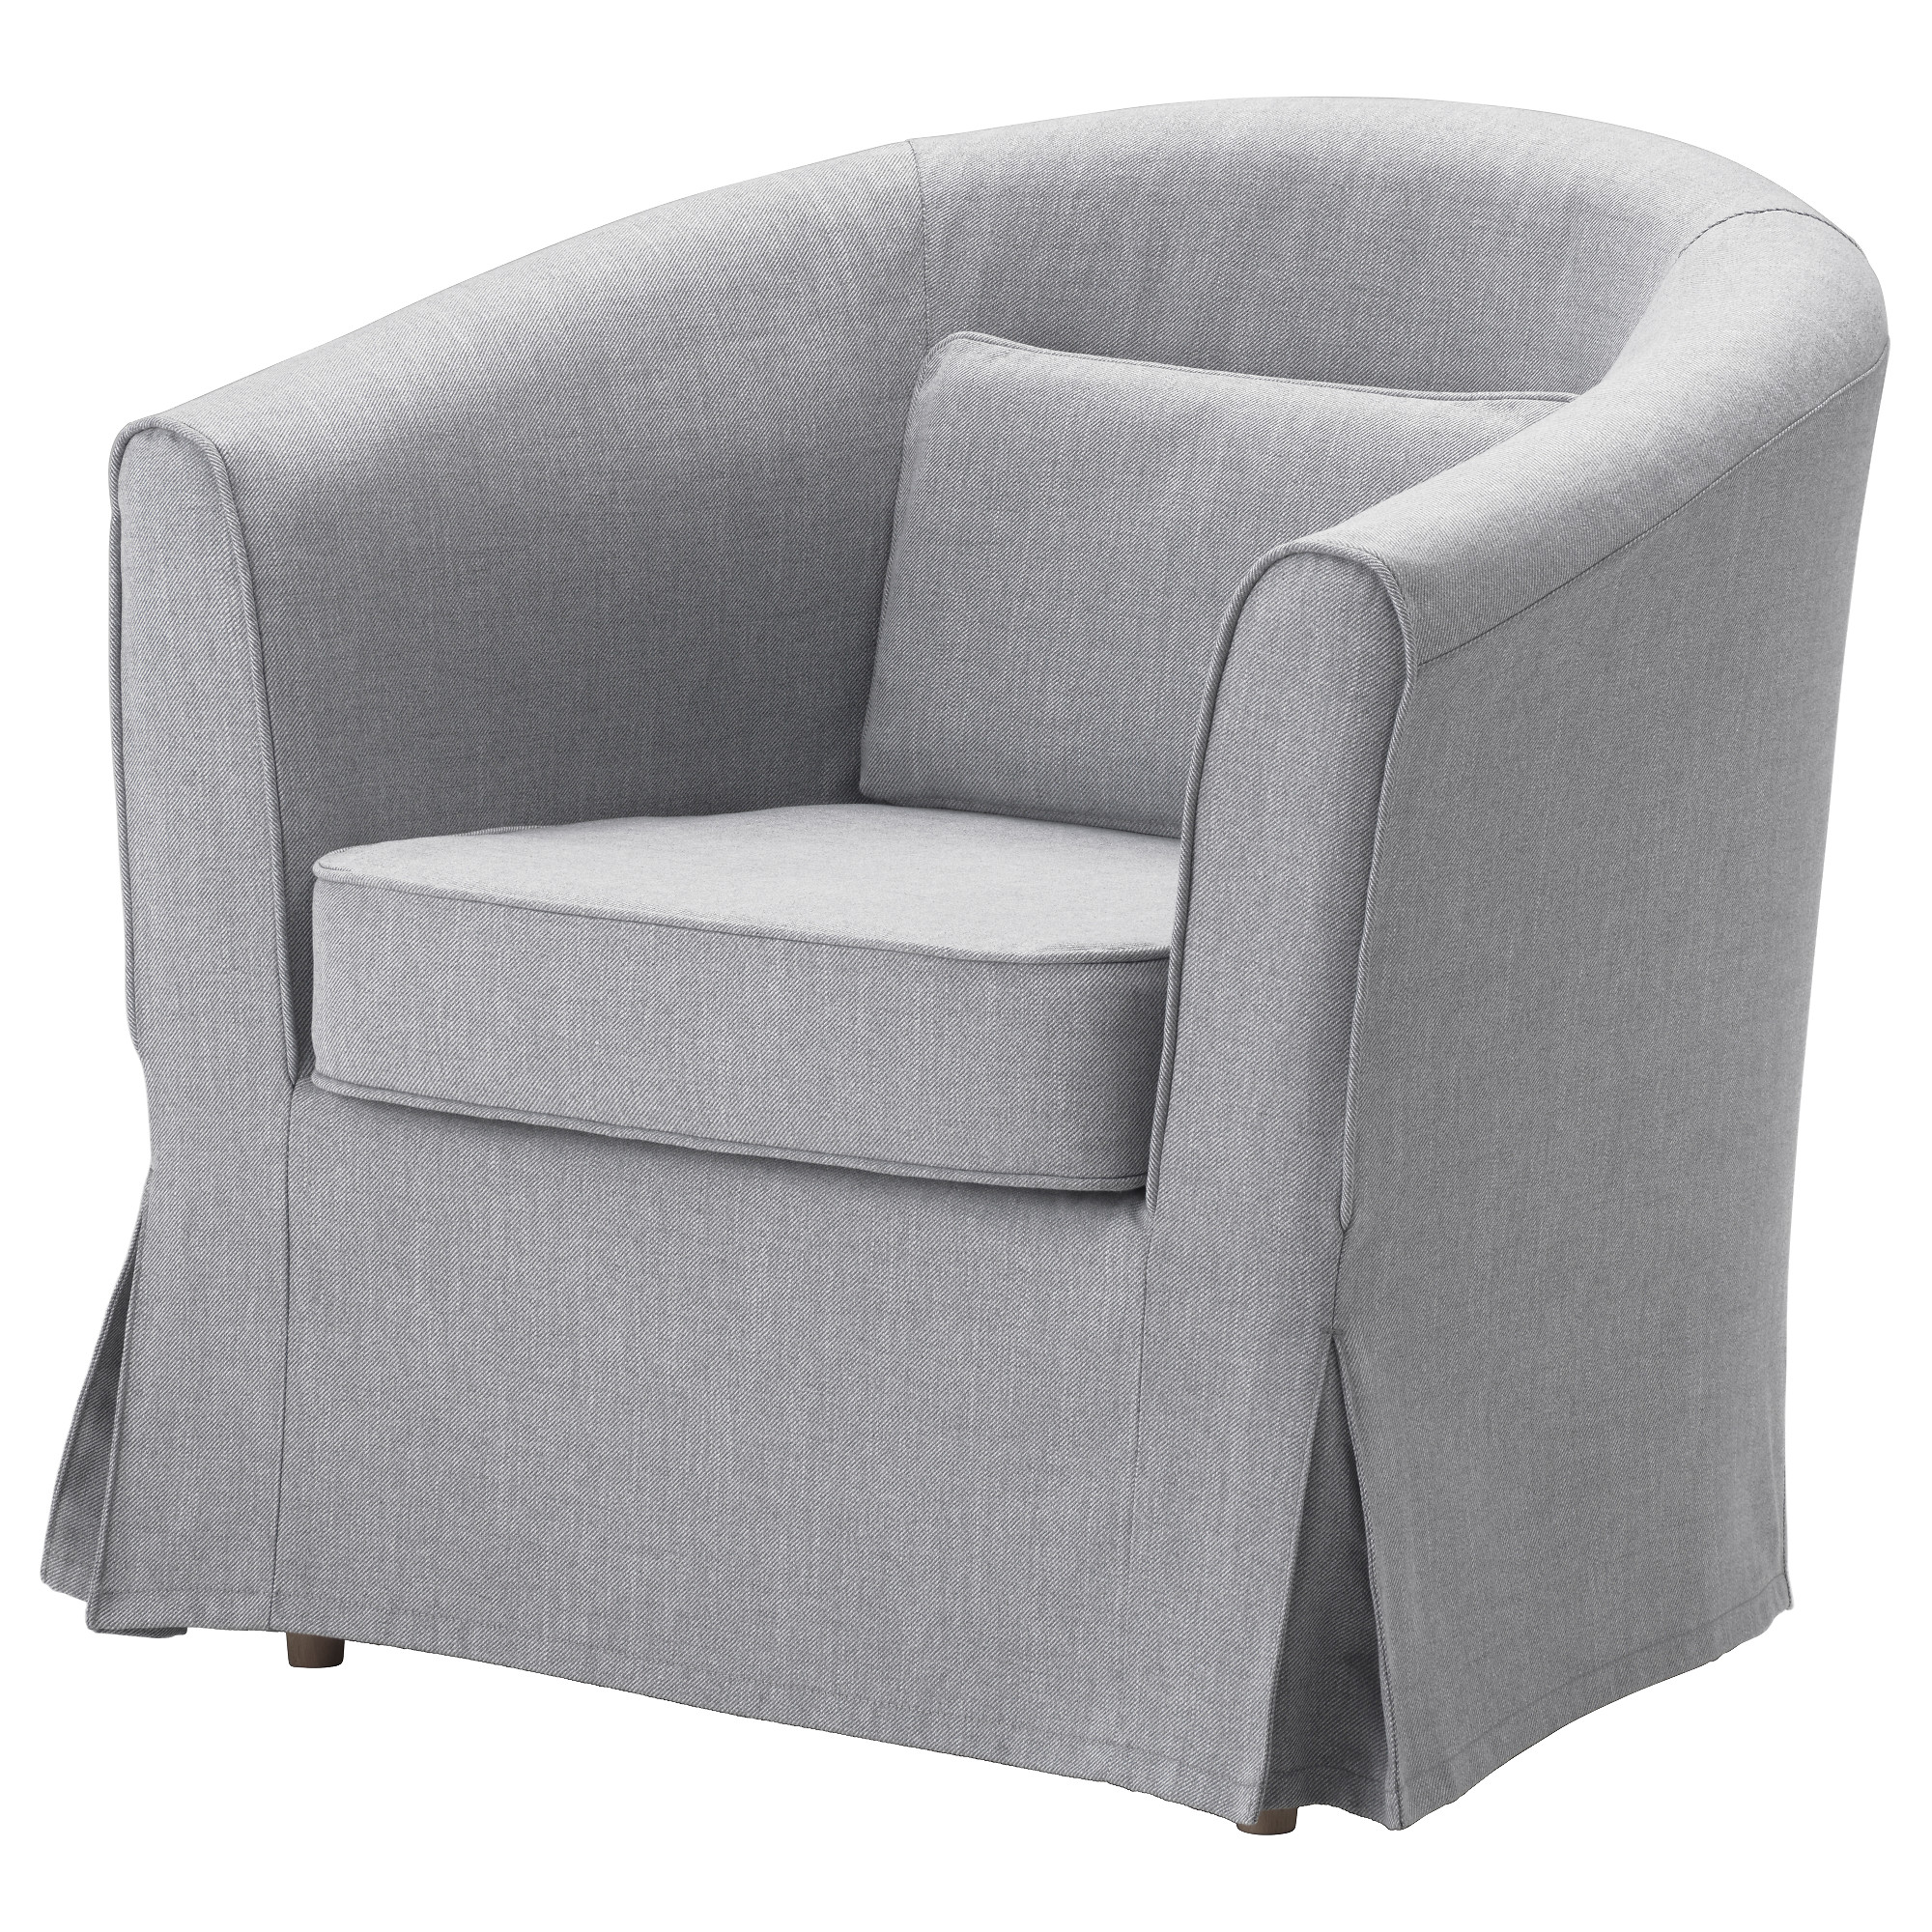 Slipcover Sofa | Furniture Slipcovers | Oversized Chair Slipcover